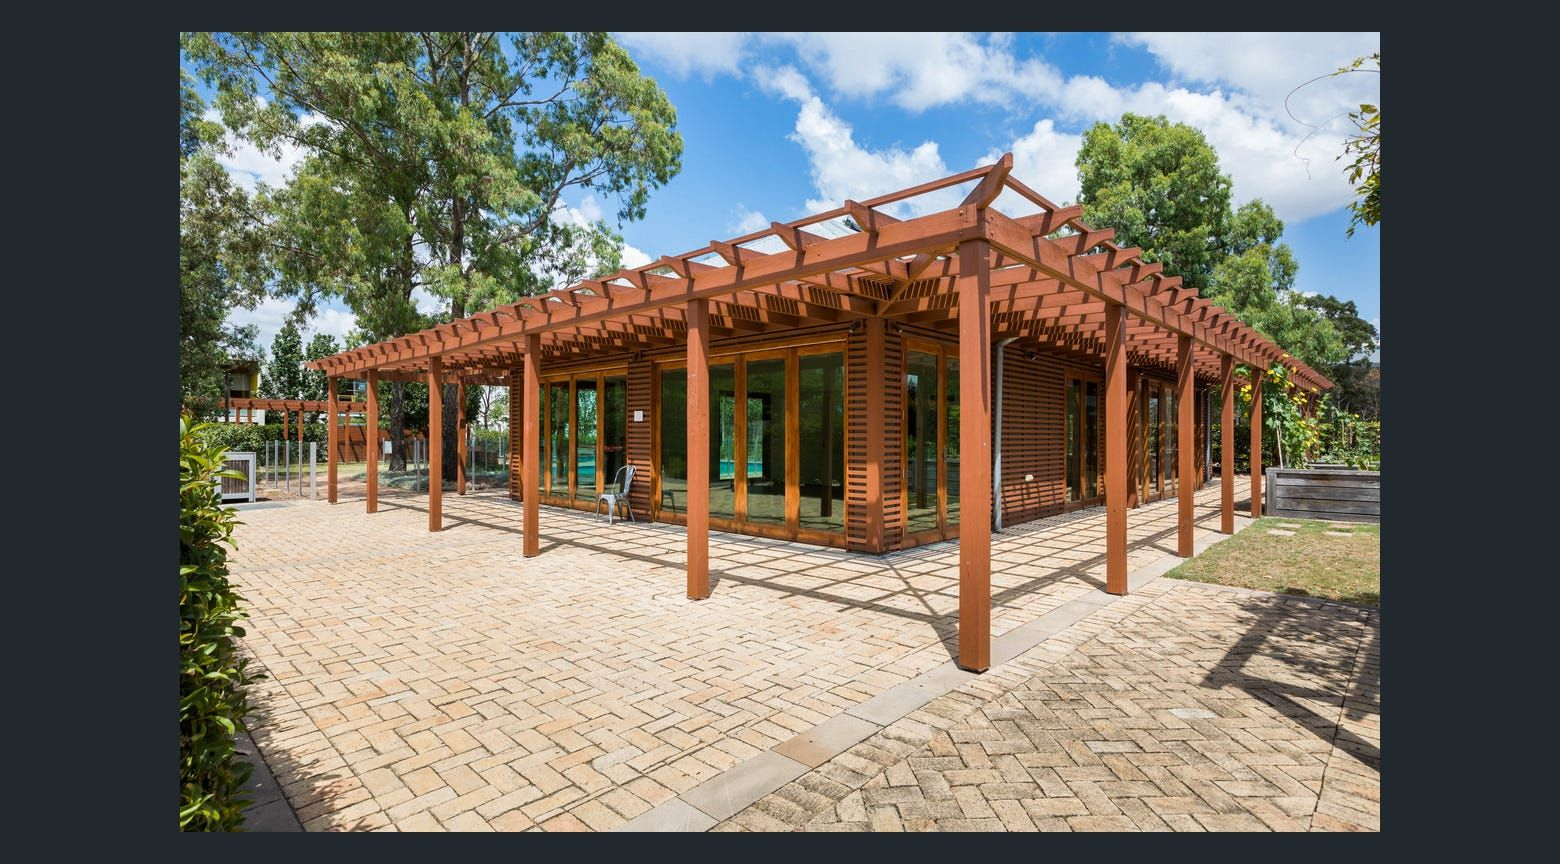 603/72 Civic Way Rouse Hill 2155